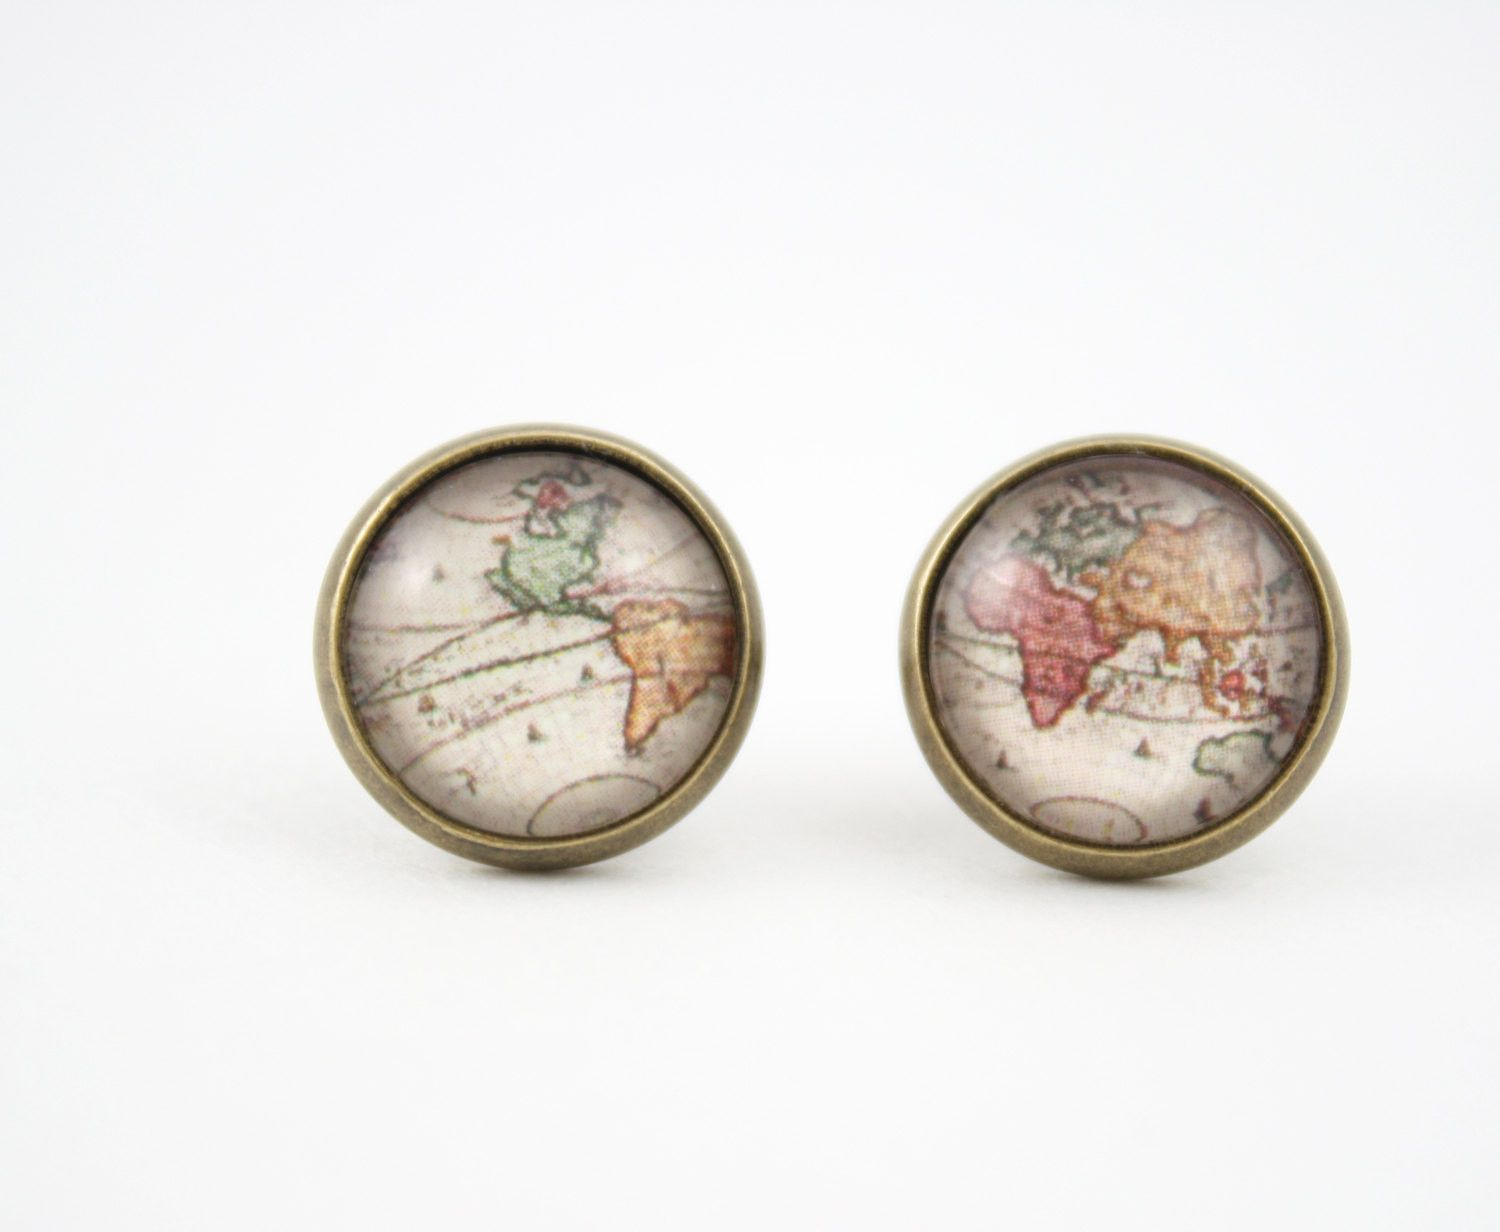 This pair of world map earrings were made with high quality prints and 12 mm clear glass domes. They are attached to 14 mm bronze earring studs with backings. Nickel Free & Lead Free Note: These glass